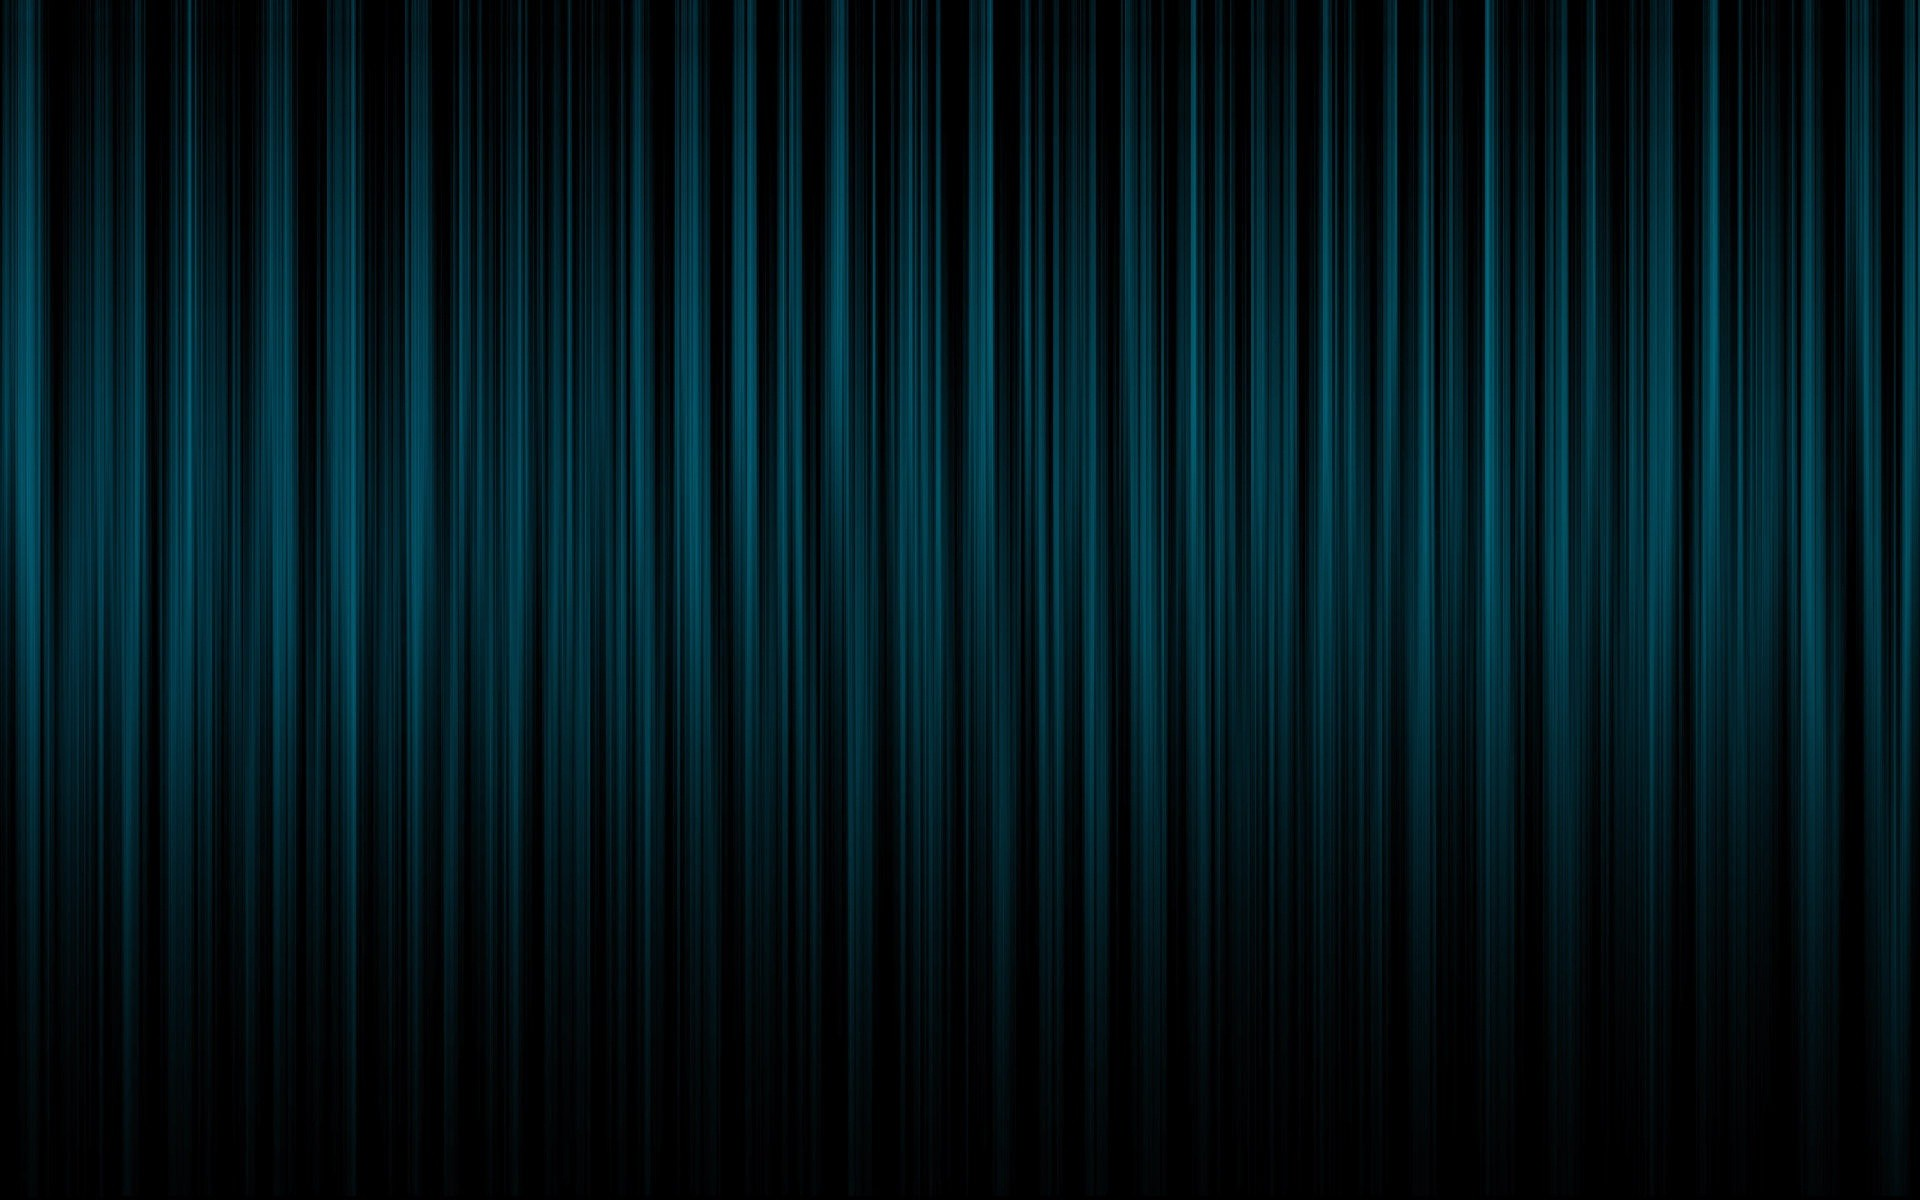 Blue and black vertical line plain wallpapers